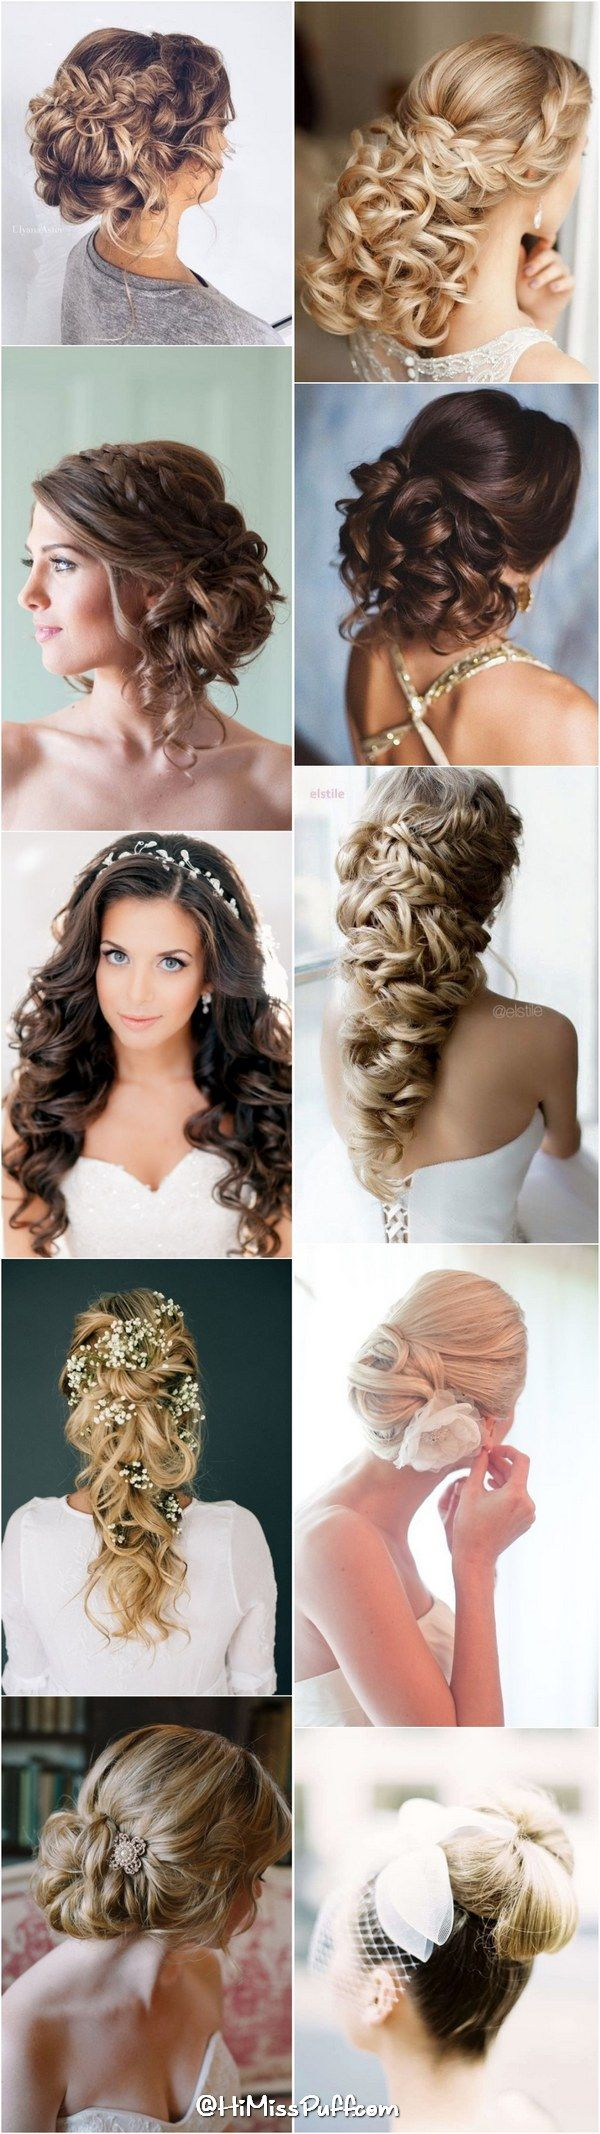 Sweet 15 Hairstyles For Damas www.galleryhip.com - The Hippest Pics